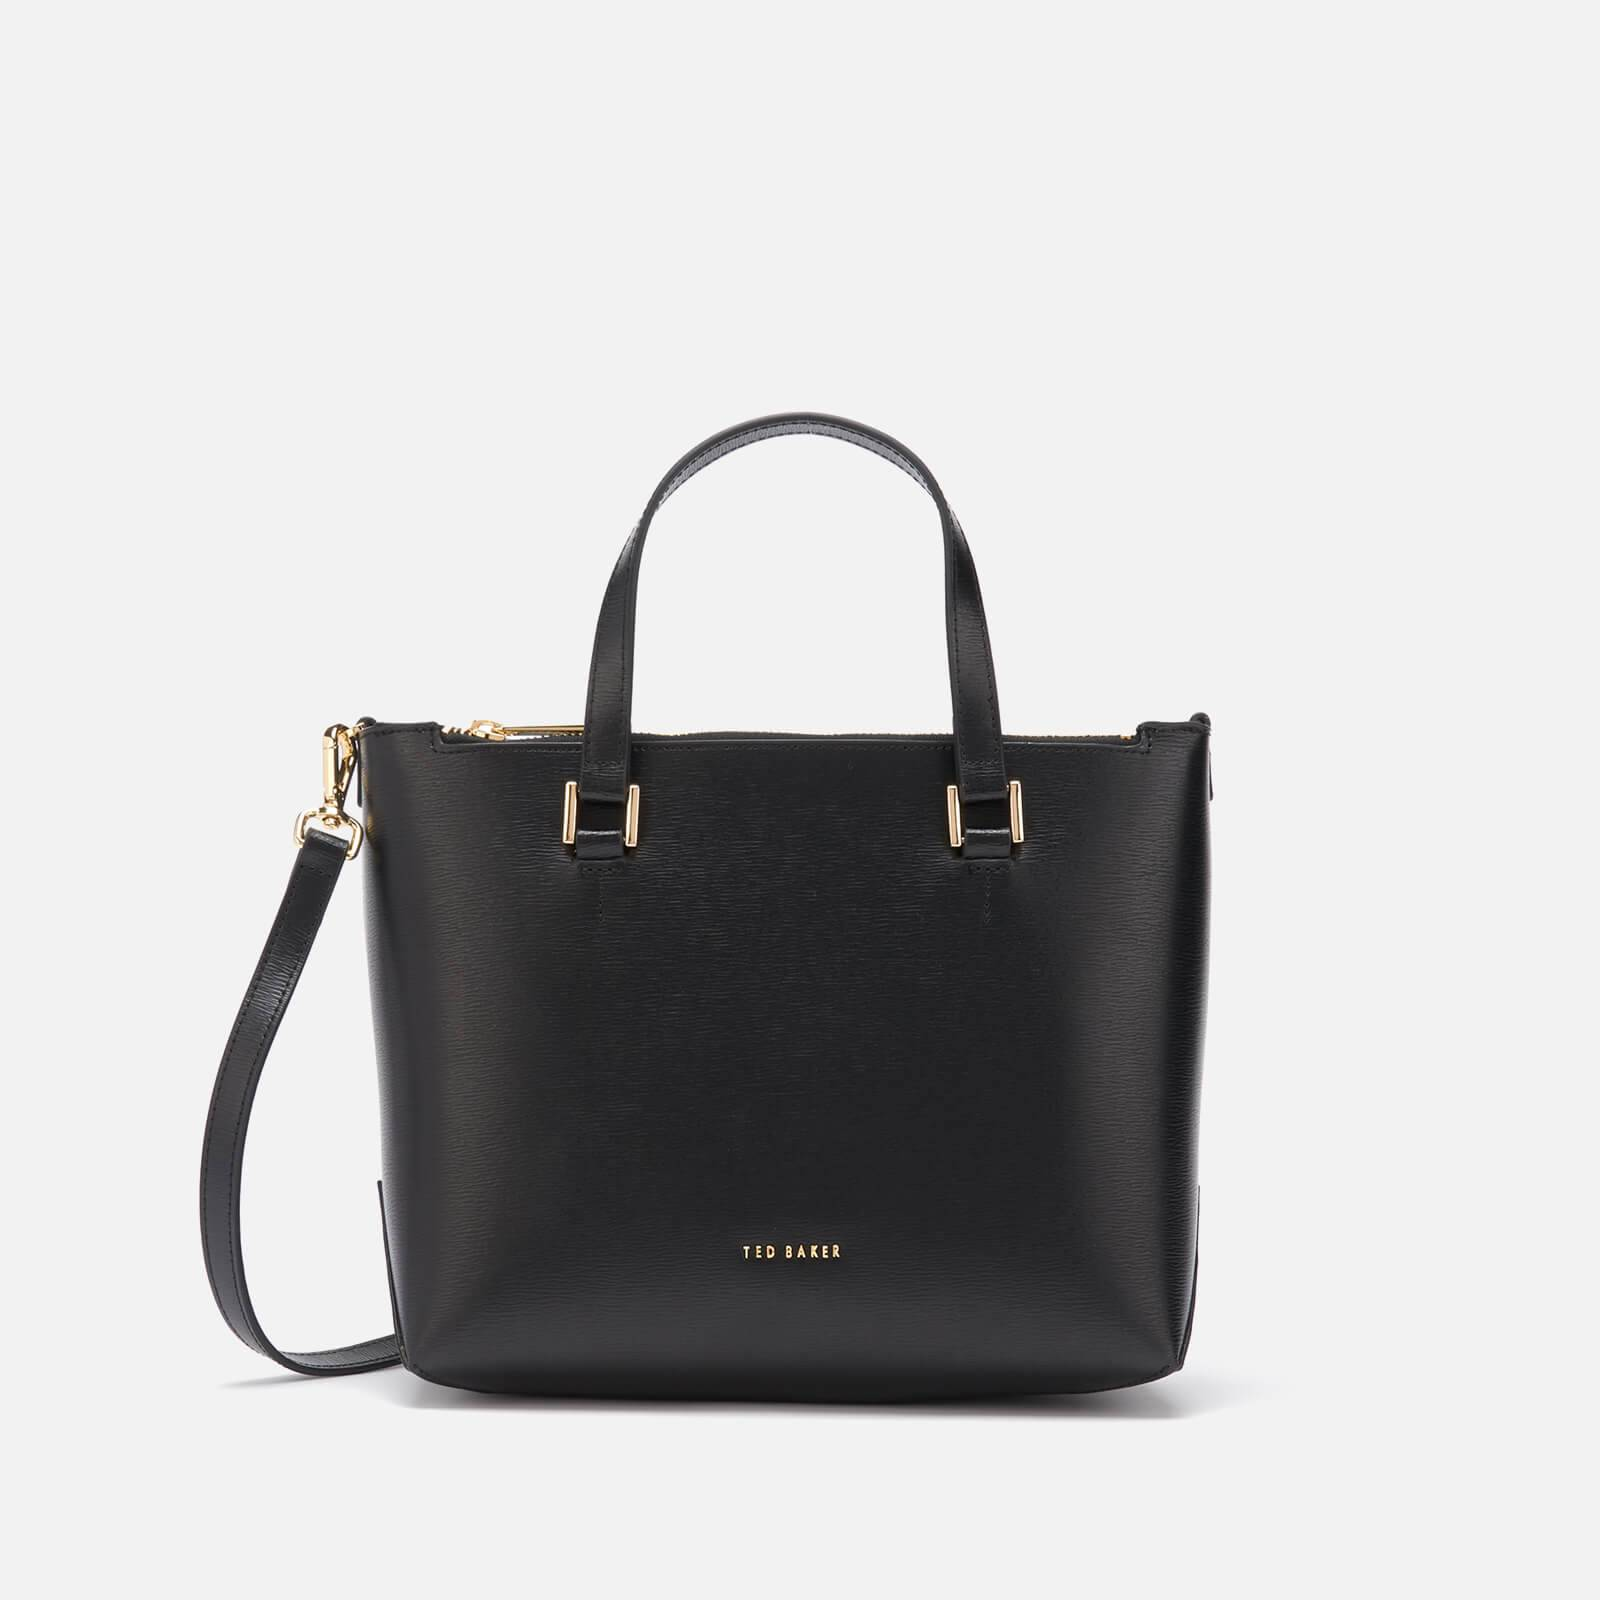 Ted Baker Women's Liliaan Leather Tote Bag - Black